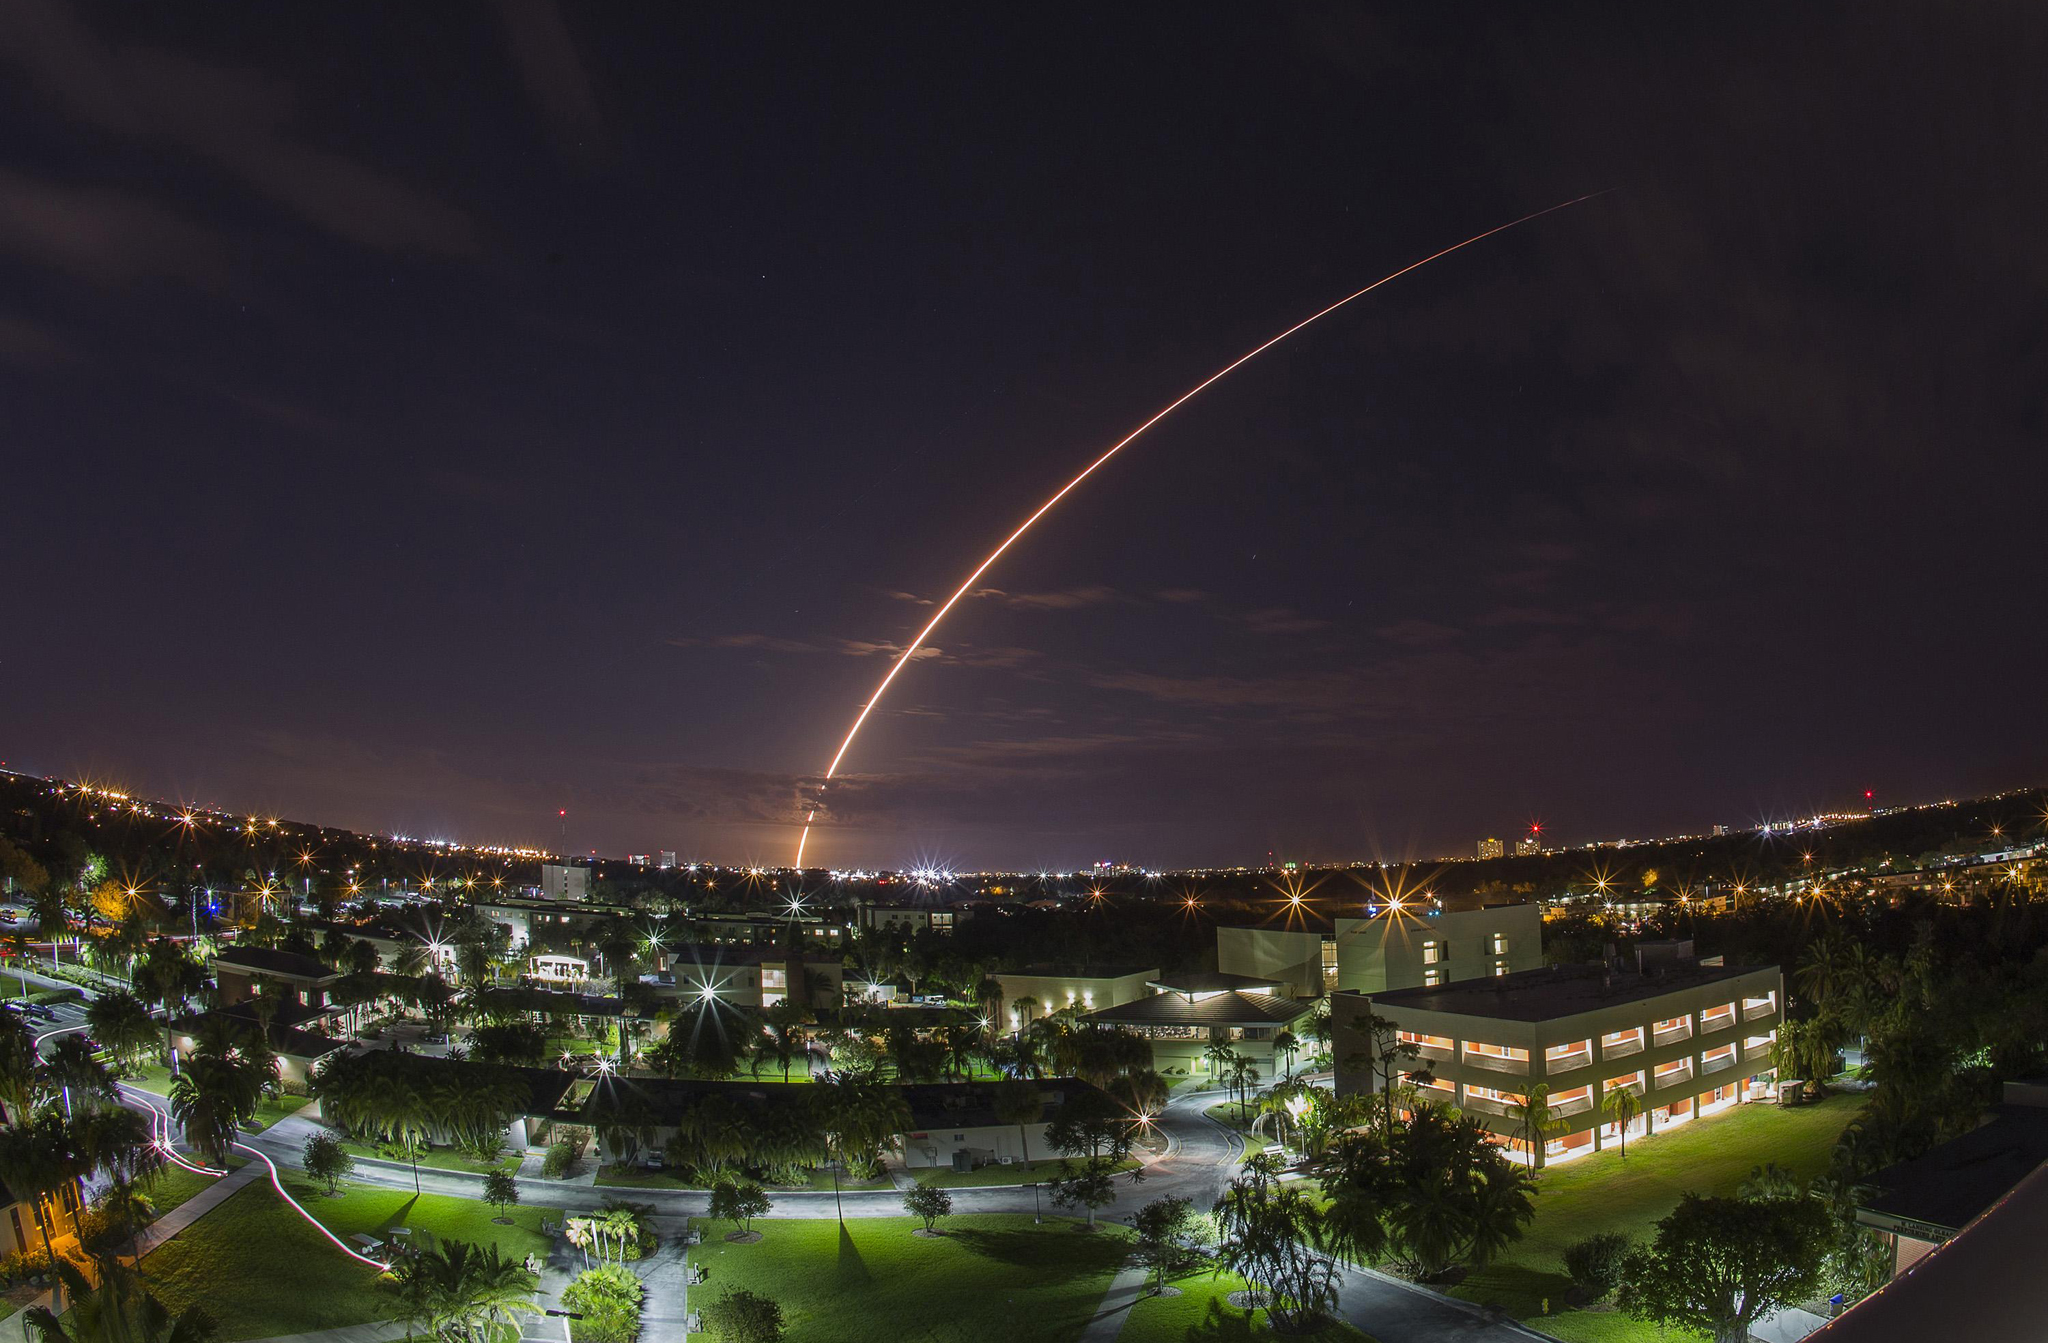 "REUTERS PICTURE HIGHLIGHT...ATTENTION EDITORS - REUTERS PICTURE HIGHLIGHT TRANSMITTED BY 0230 GMT ON JANUARY 21, 2015    MB01  A United Launch Alliance Atlas V 551 rocket blasts off from Cape Canaveral Air Force Station in Florida, January 20, 2015.  REUTERS/Michael Brown        REUTERS NEWS PICTURES HAS NOW MADE IT EASIER TO FIND THE BEST PHOTOS FROM THE MOST IMPORTANT STORIES AND TOP STANDALONES EACH DAY. Search for ""TPX"" in the IPTC Supplemental Category field or ""IMAGES OF THE DAY"" in the Caption field and you will find a selection of 80-100 of our daily Top Pictures.    REUTERS NEWS PICTURES.     TEMPLATE OUT"